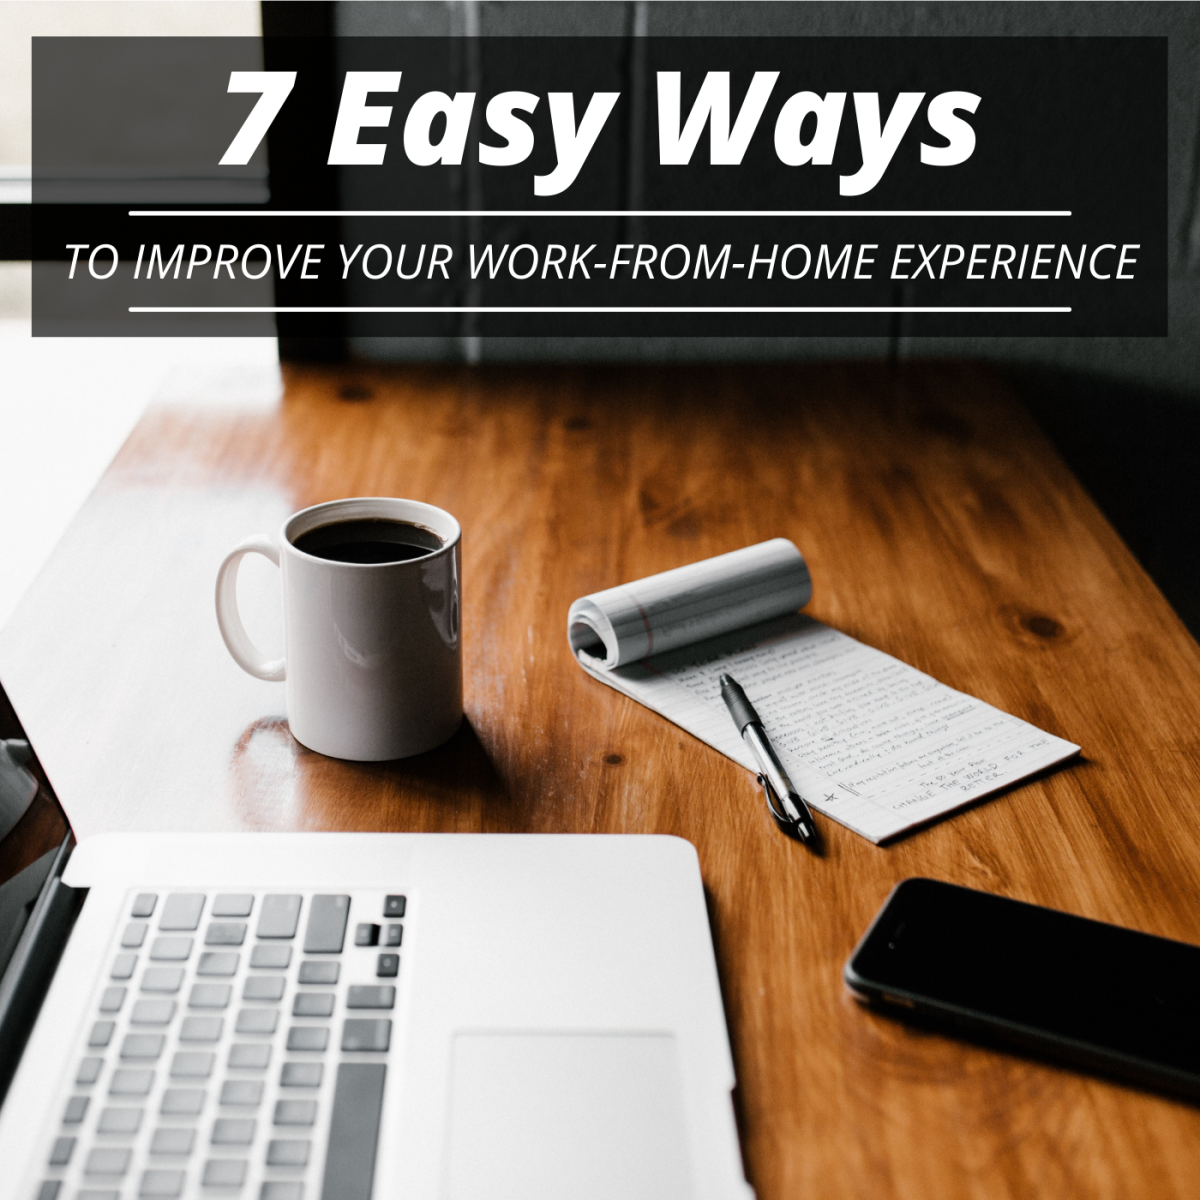 Adjusting to working from home can come with challenges, but these seven strategies can help keep you happy, motivated, and on-task.